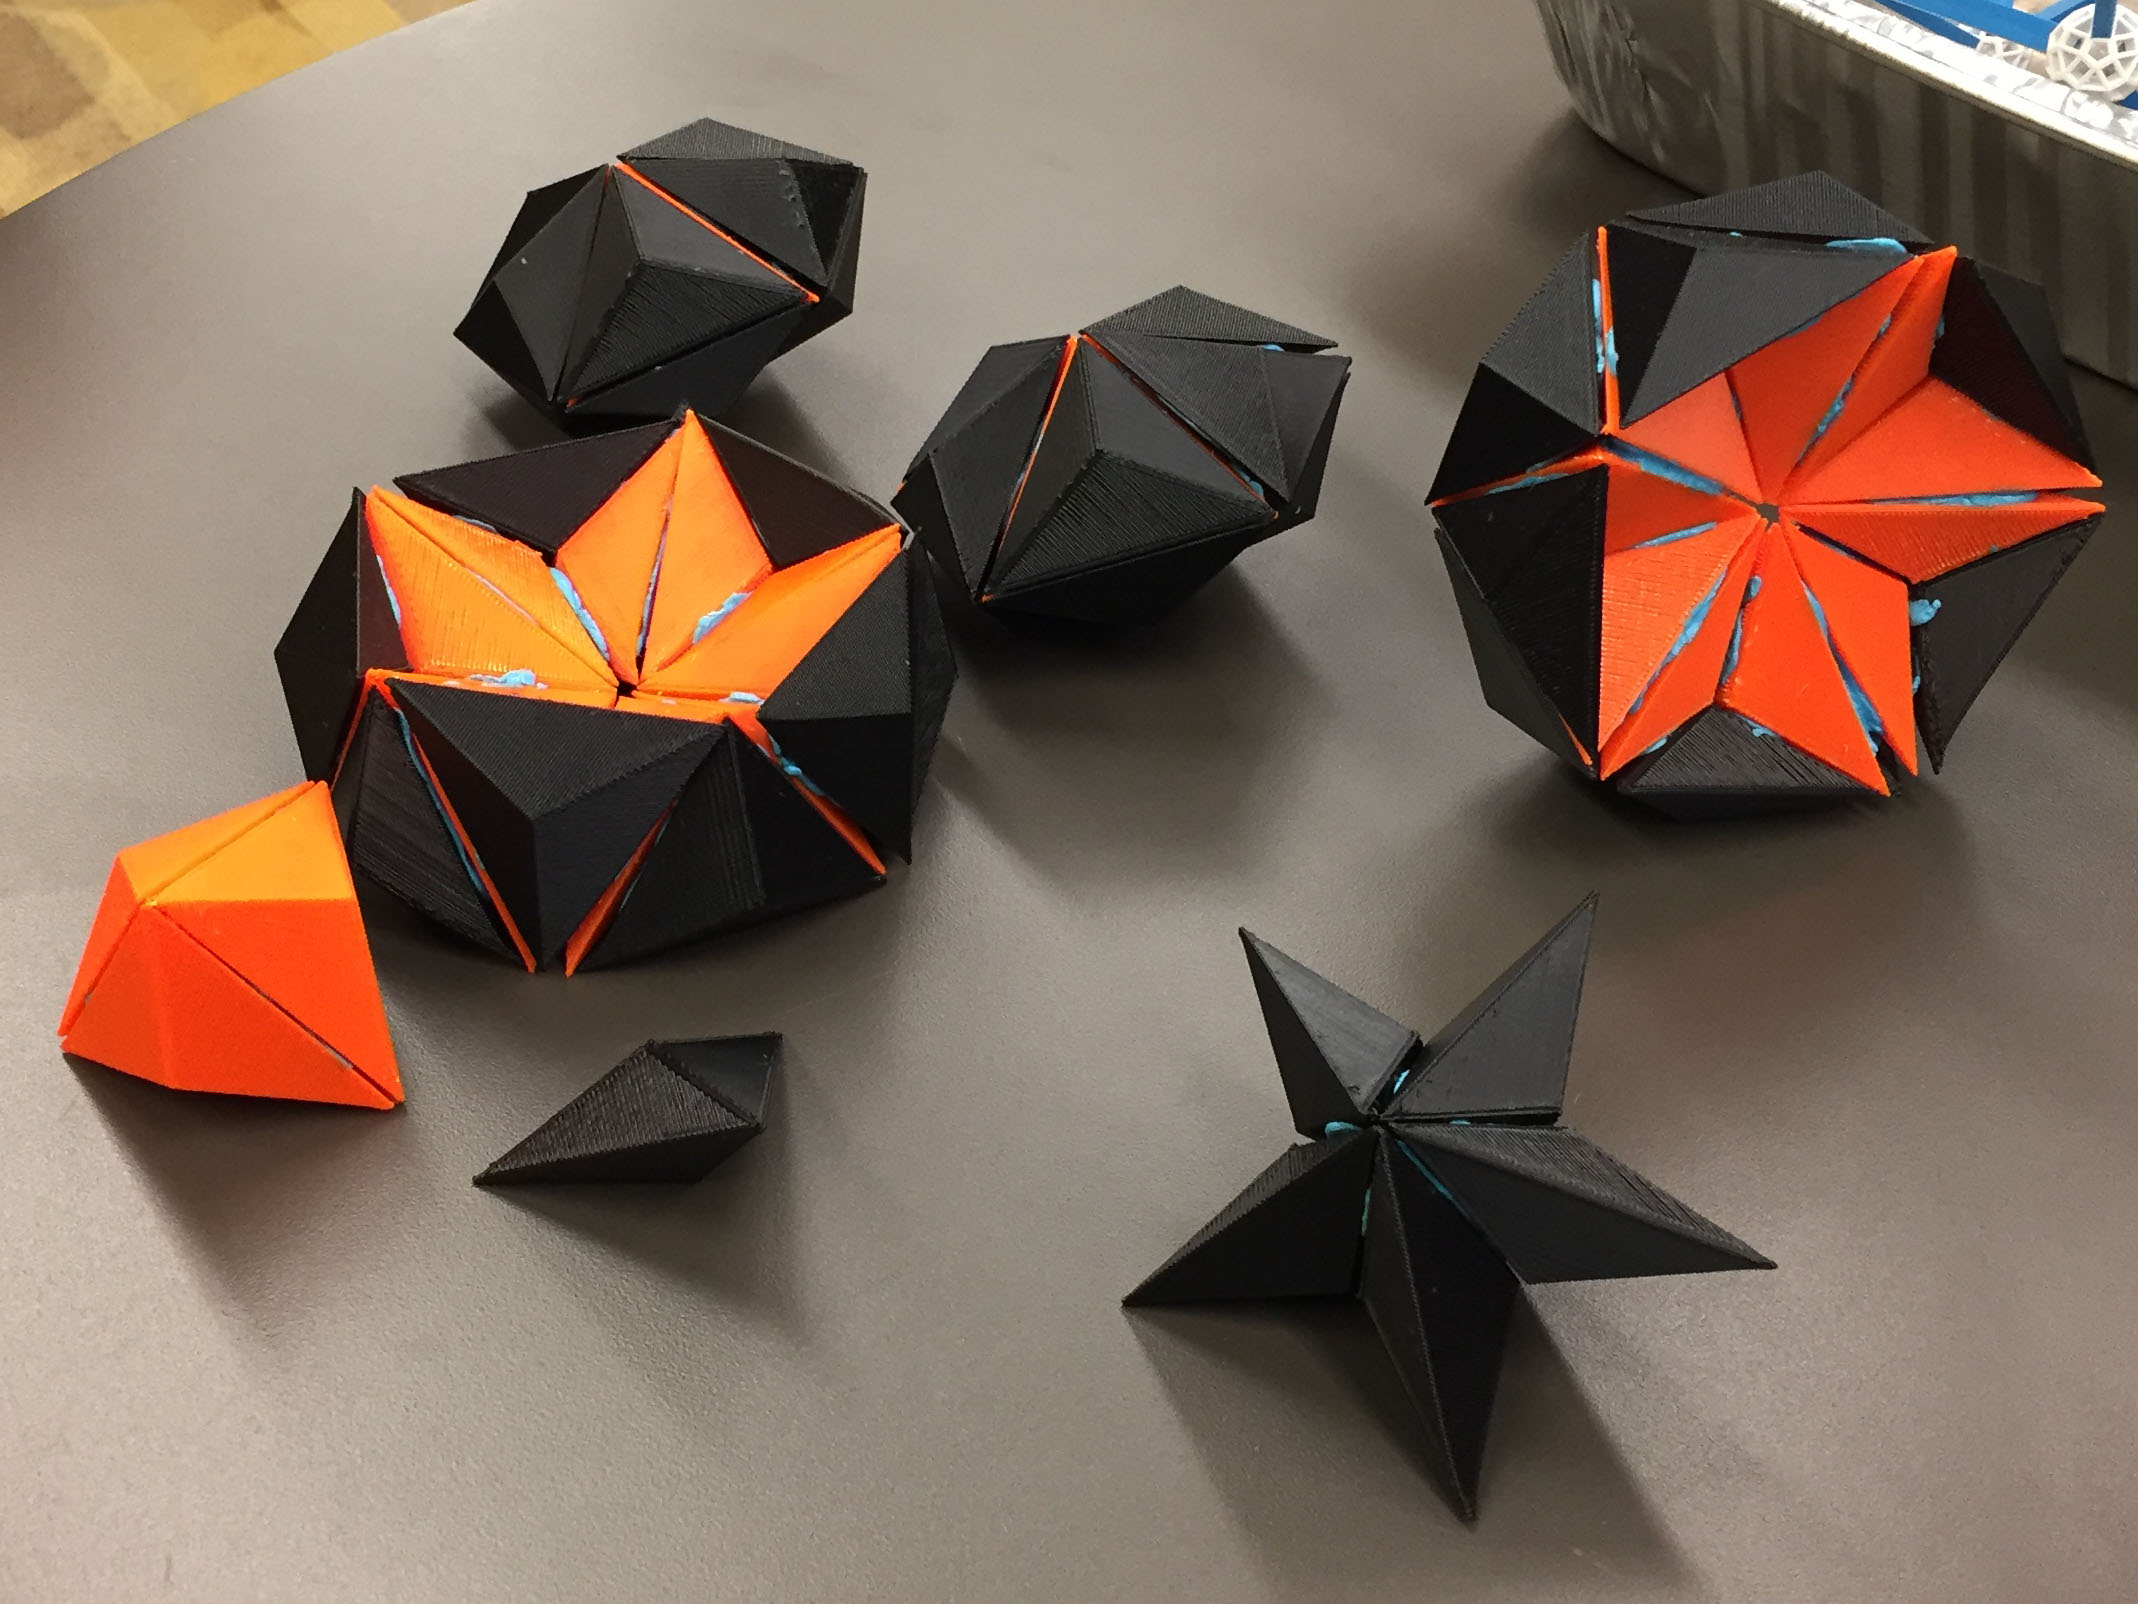 Once the Glotzer group received the electron microscope images from the Mirkin lab, they 3D printed the flattened bipyramids and glued them together to explore likely crystal structures. Image credit: Glotzer Group, University of Michigan.